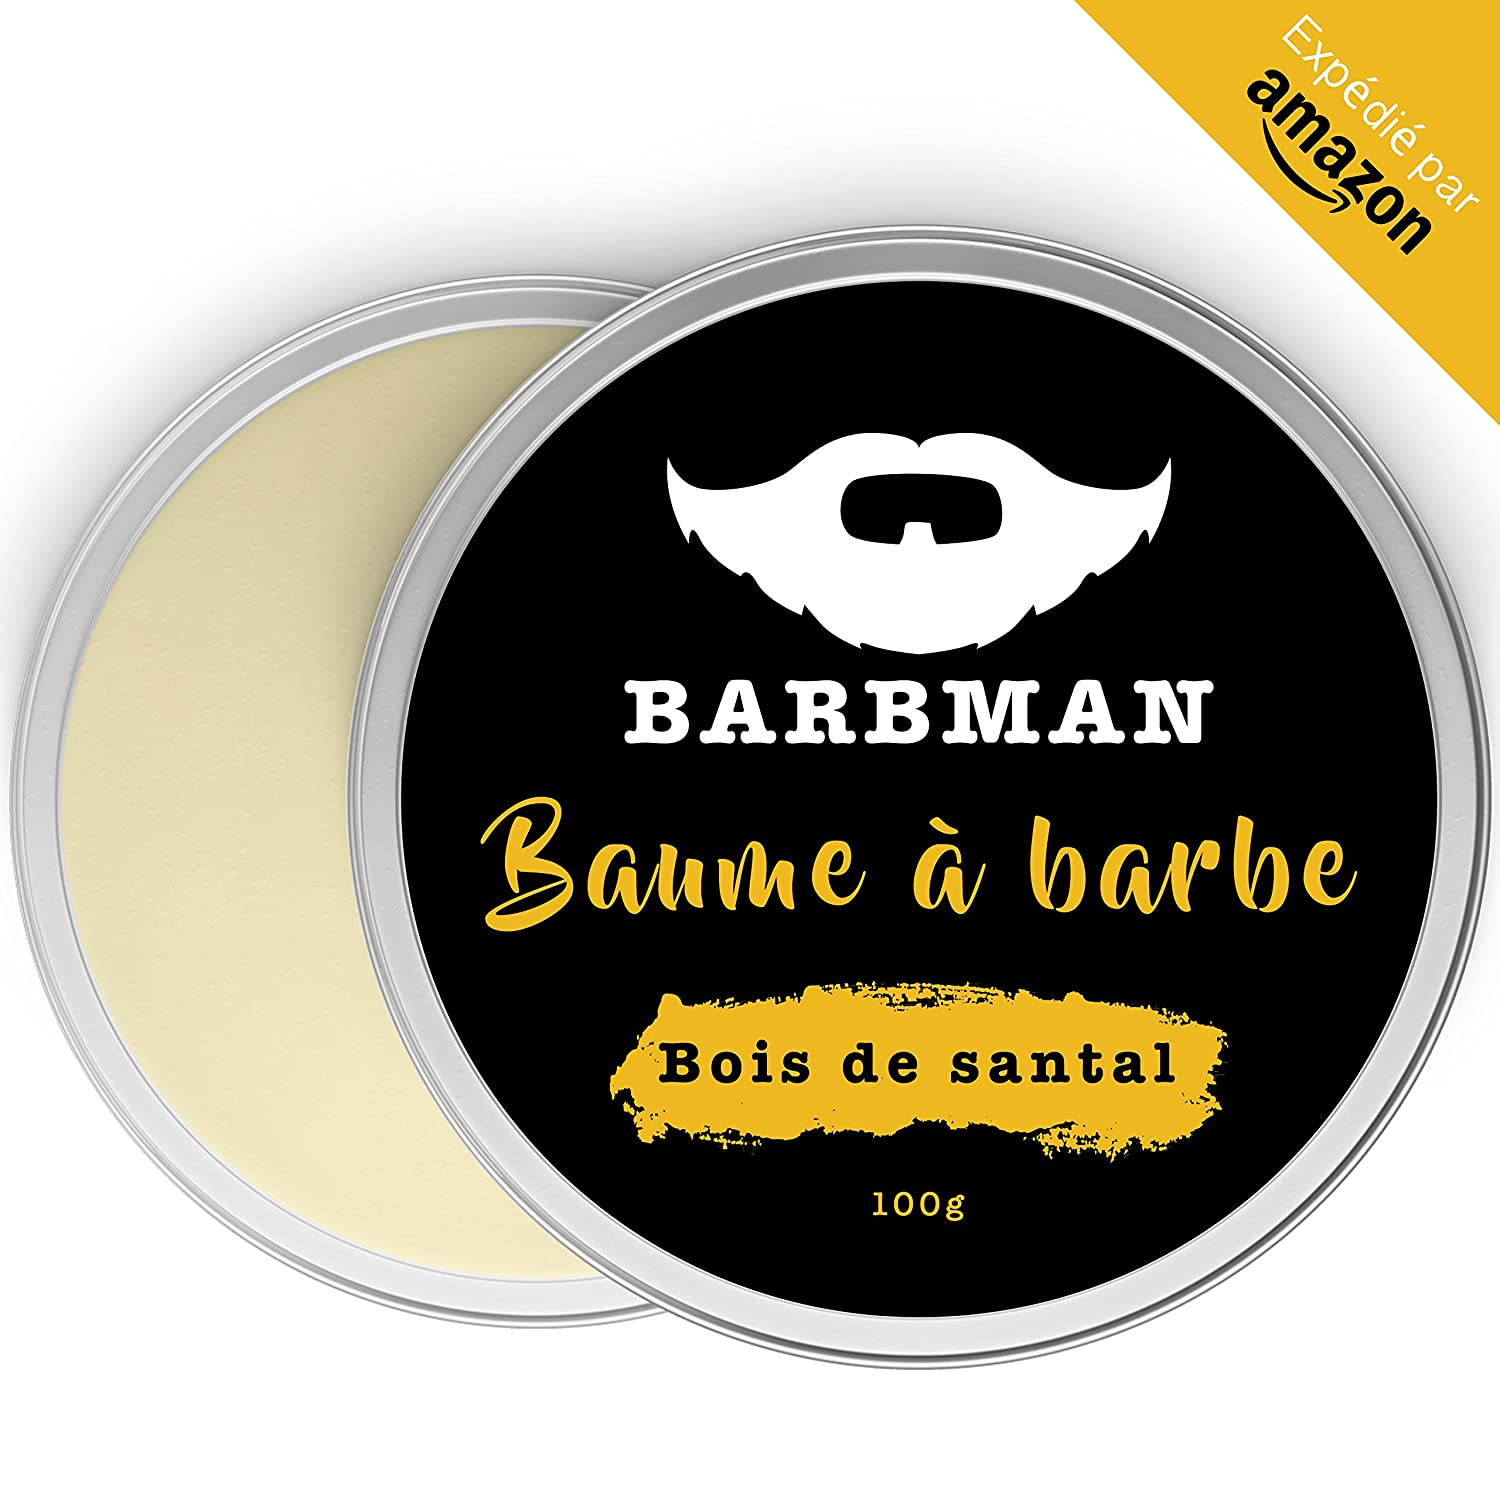 BARBMAN: Beard balm (100ml) enriched with Jojoba oil and cocoa butter to moisturize and nourish skins and beards. Discipline the beard by bringing it brightness and softness. A gift for bearded men.